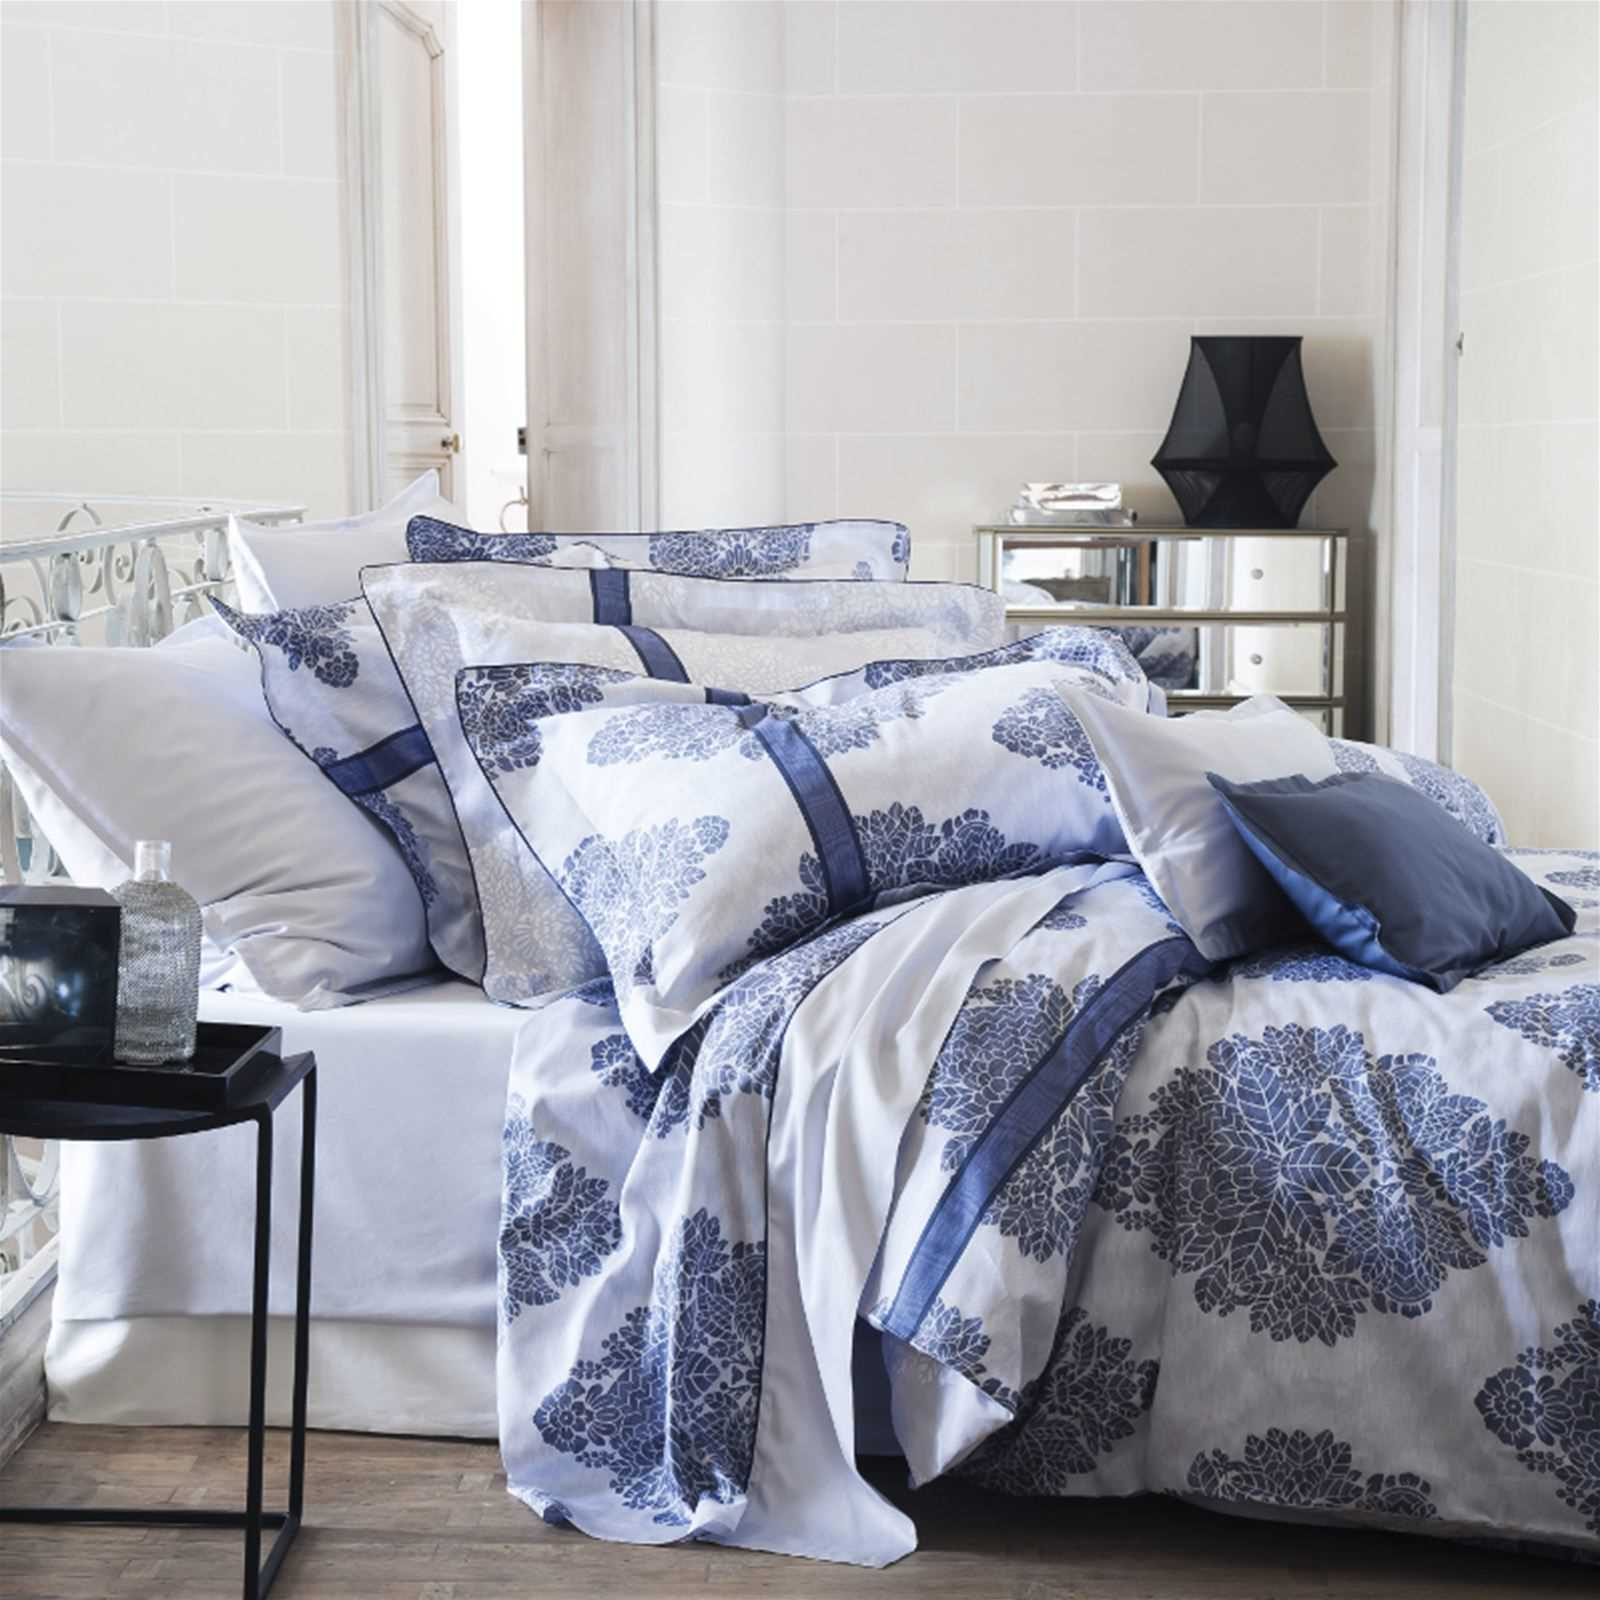 alexandre turpault quai branly housse de couette bleu marine brandalley. Black Bedroom Furniture Sets. Home Design Ideas